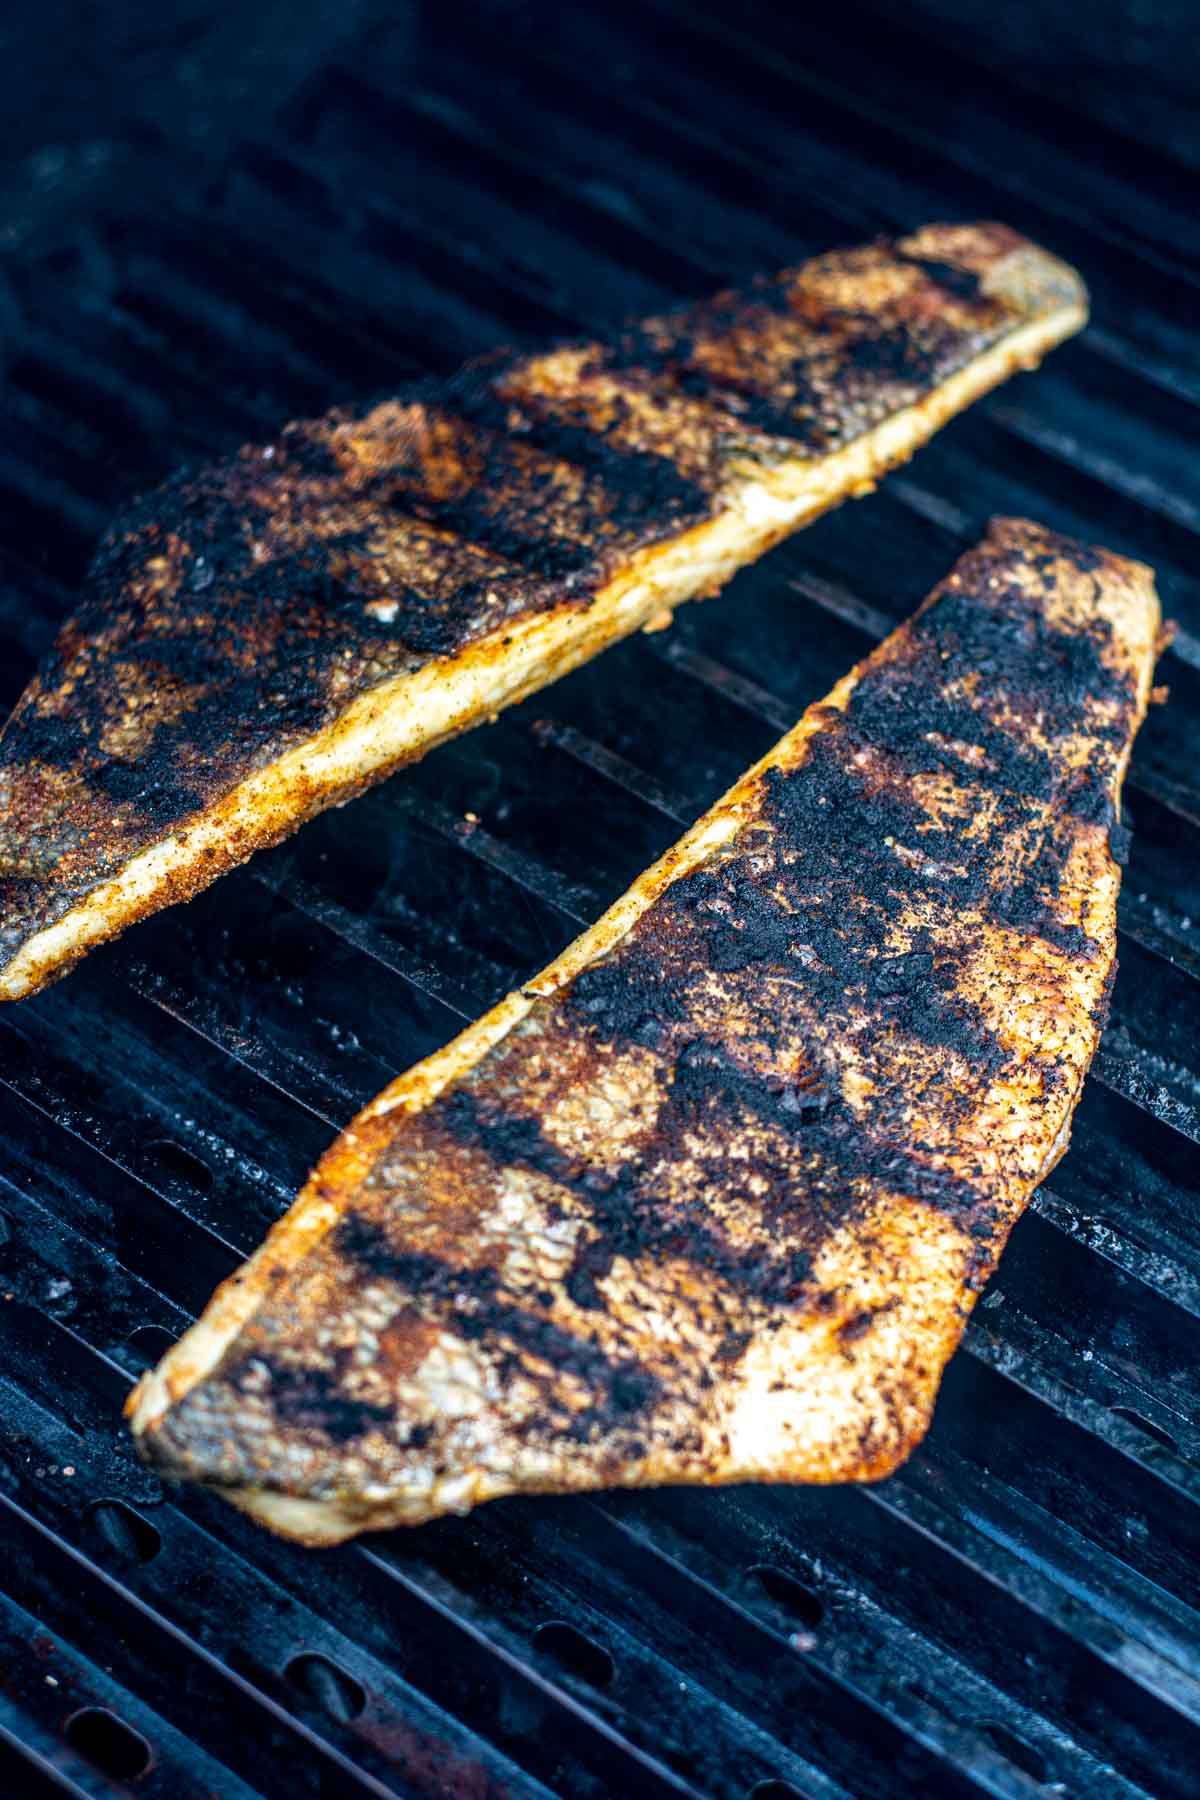 two fillets of Branzino on the grill with a light coating of Jamaican jerk seasoning.